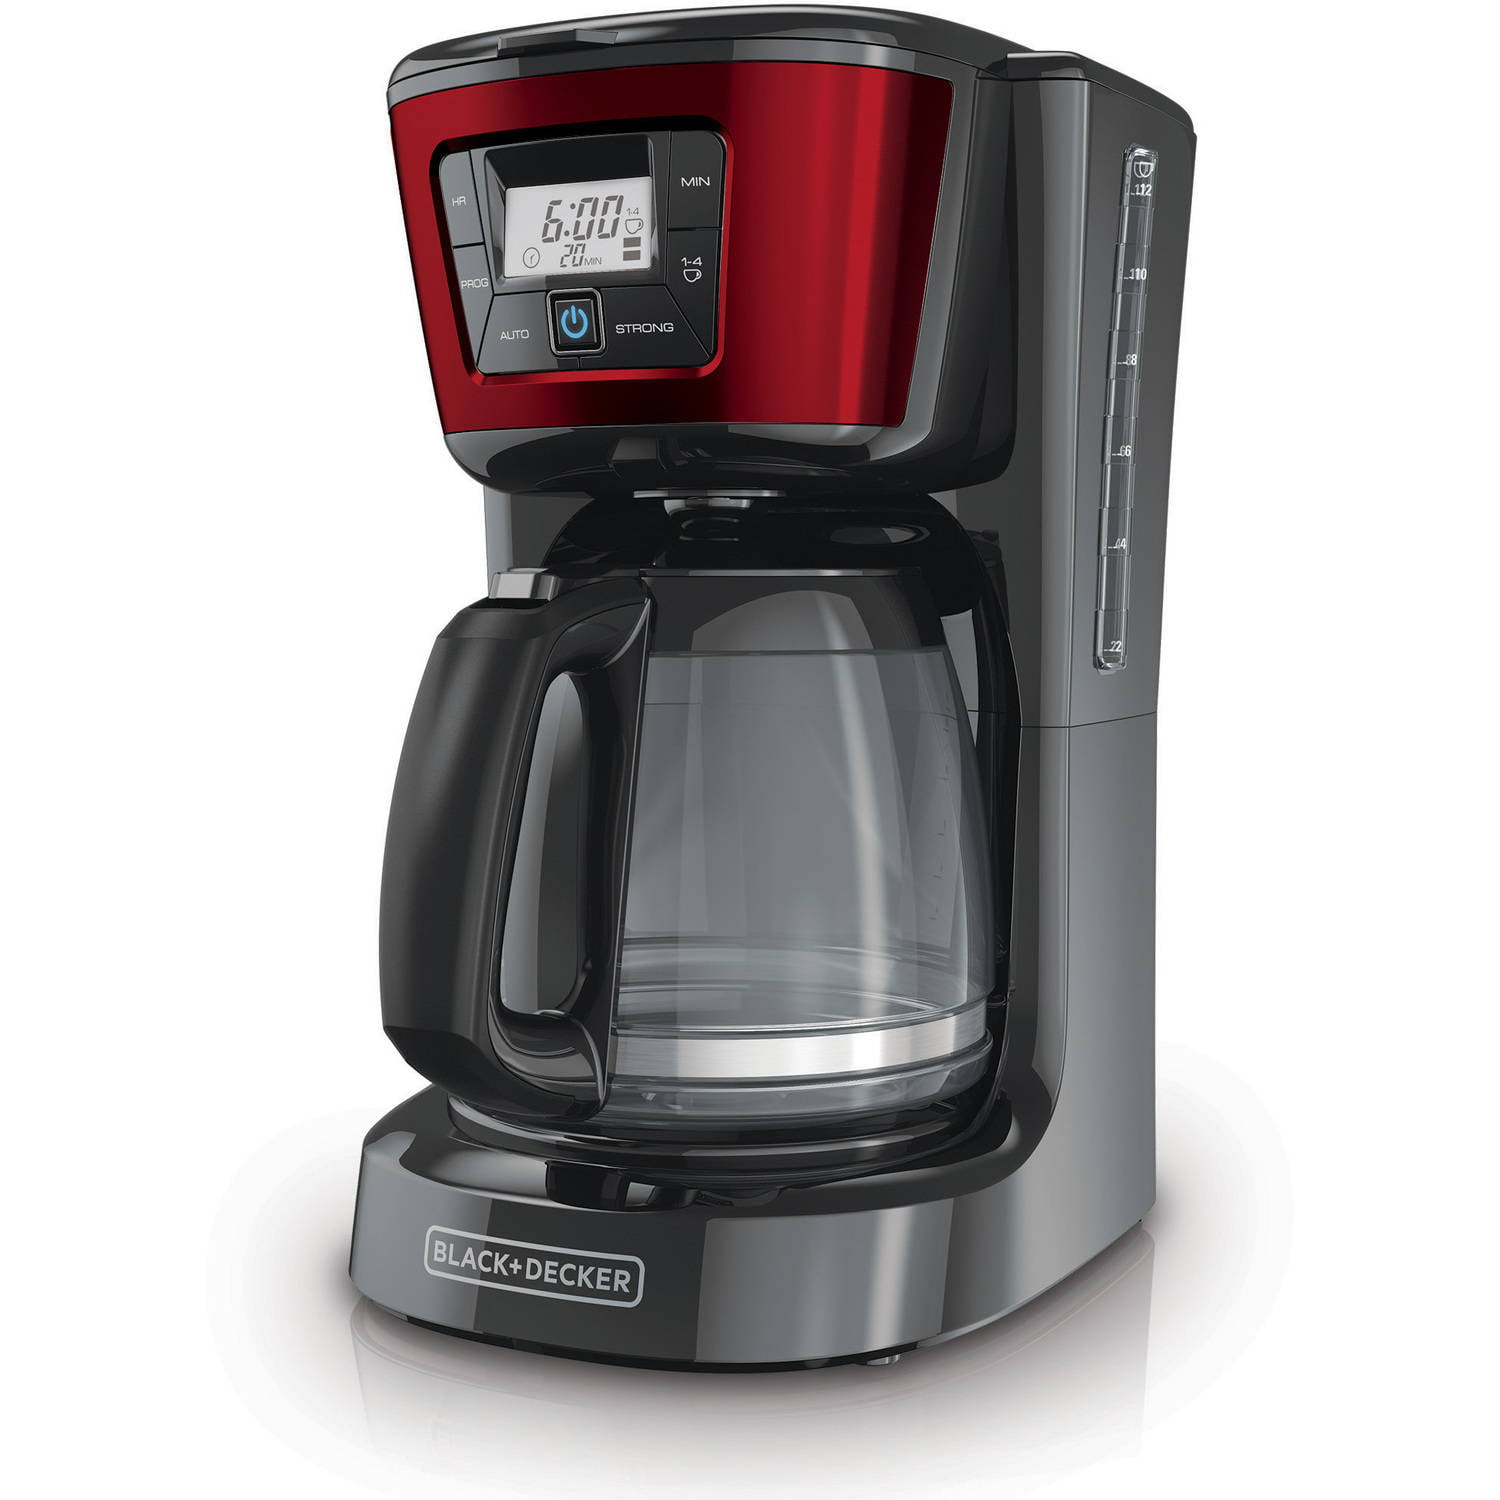 TOP QUALITY Black and Decker 12-Cup Programmable Coffee Maker Thermal Carafe eBay